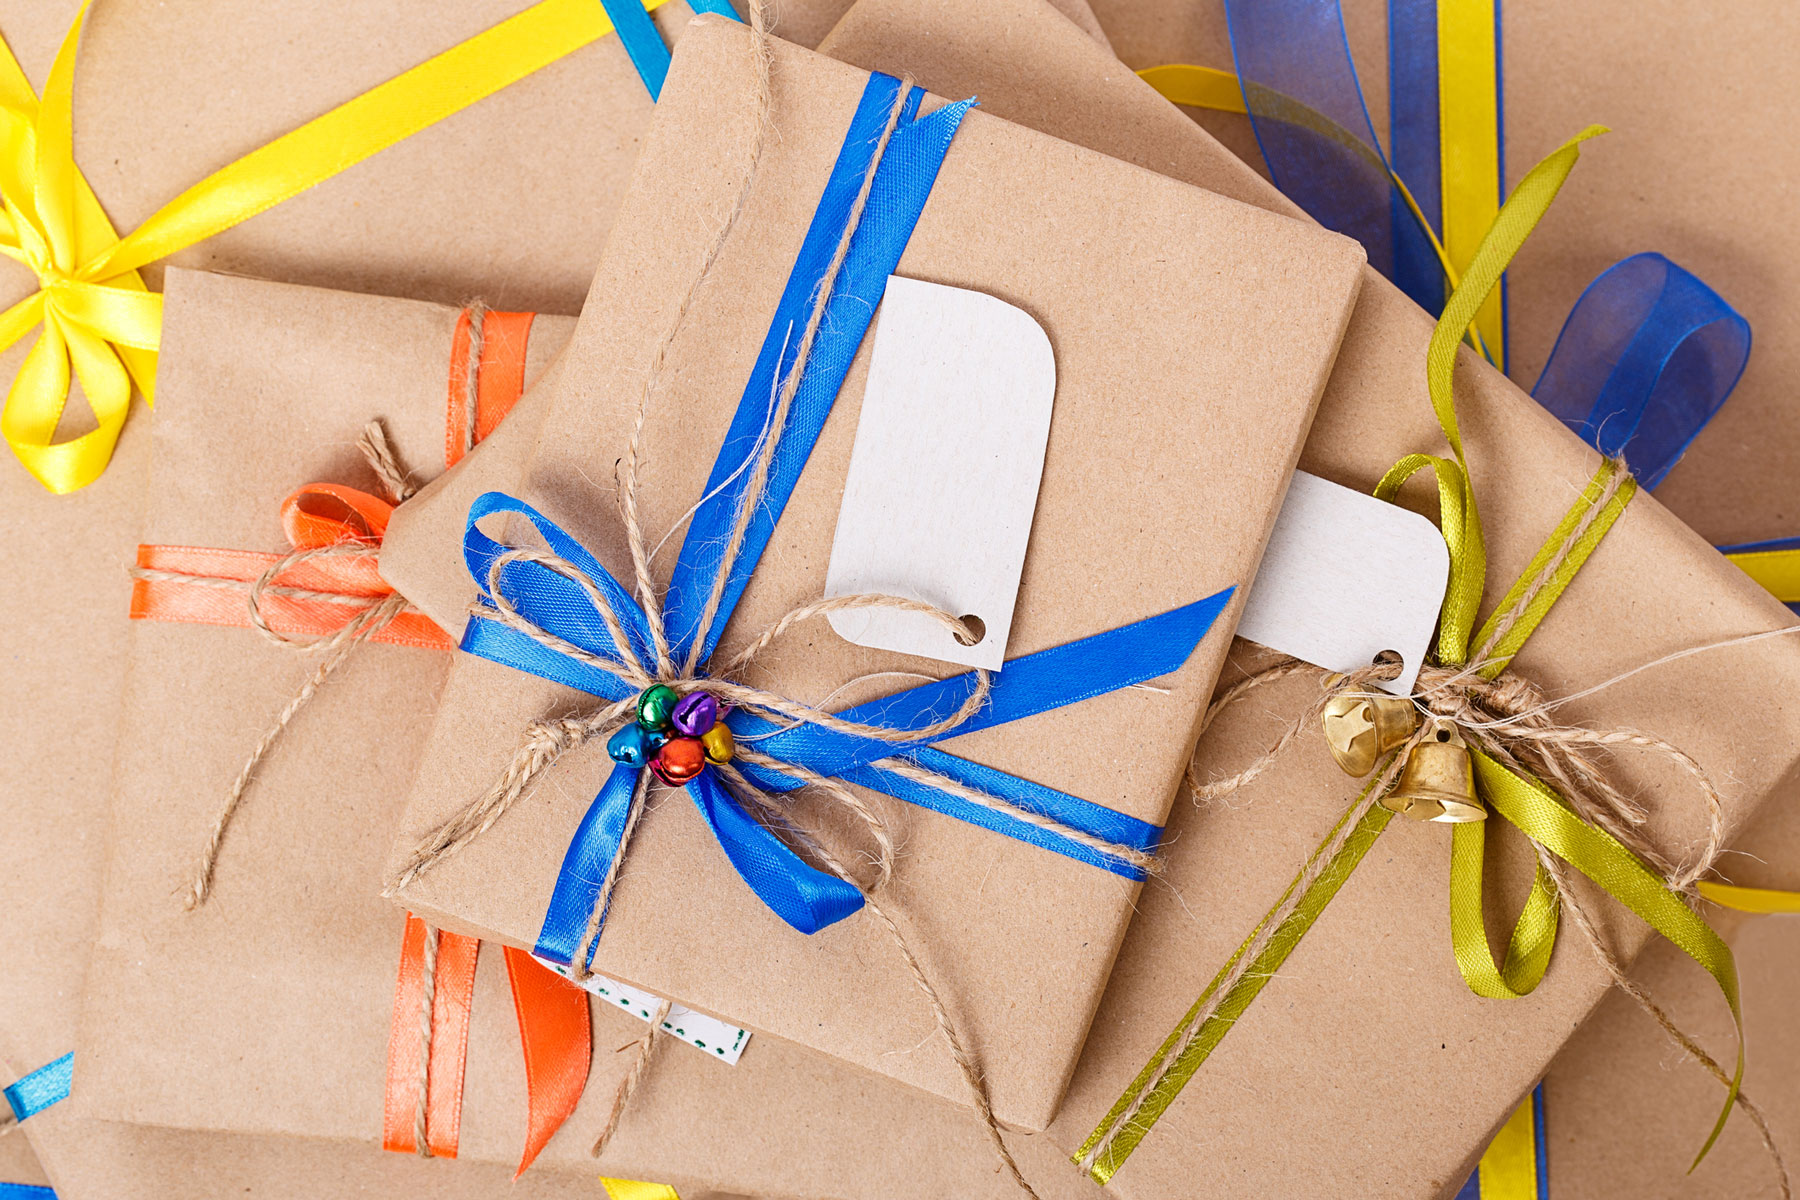 Gifts wrapped in butcher paper - gift wrapping alternatives